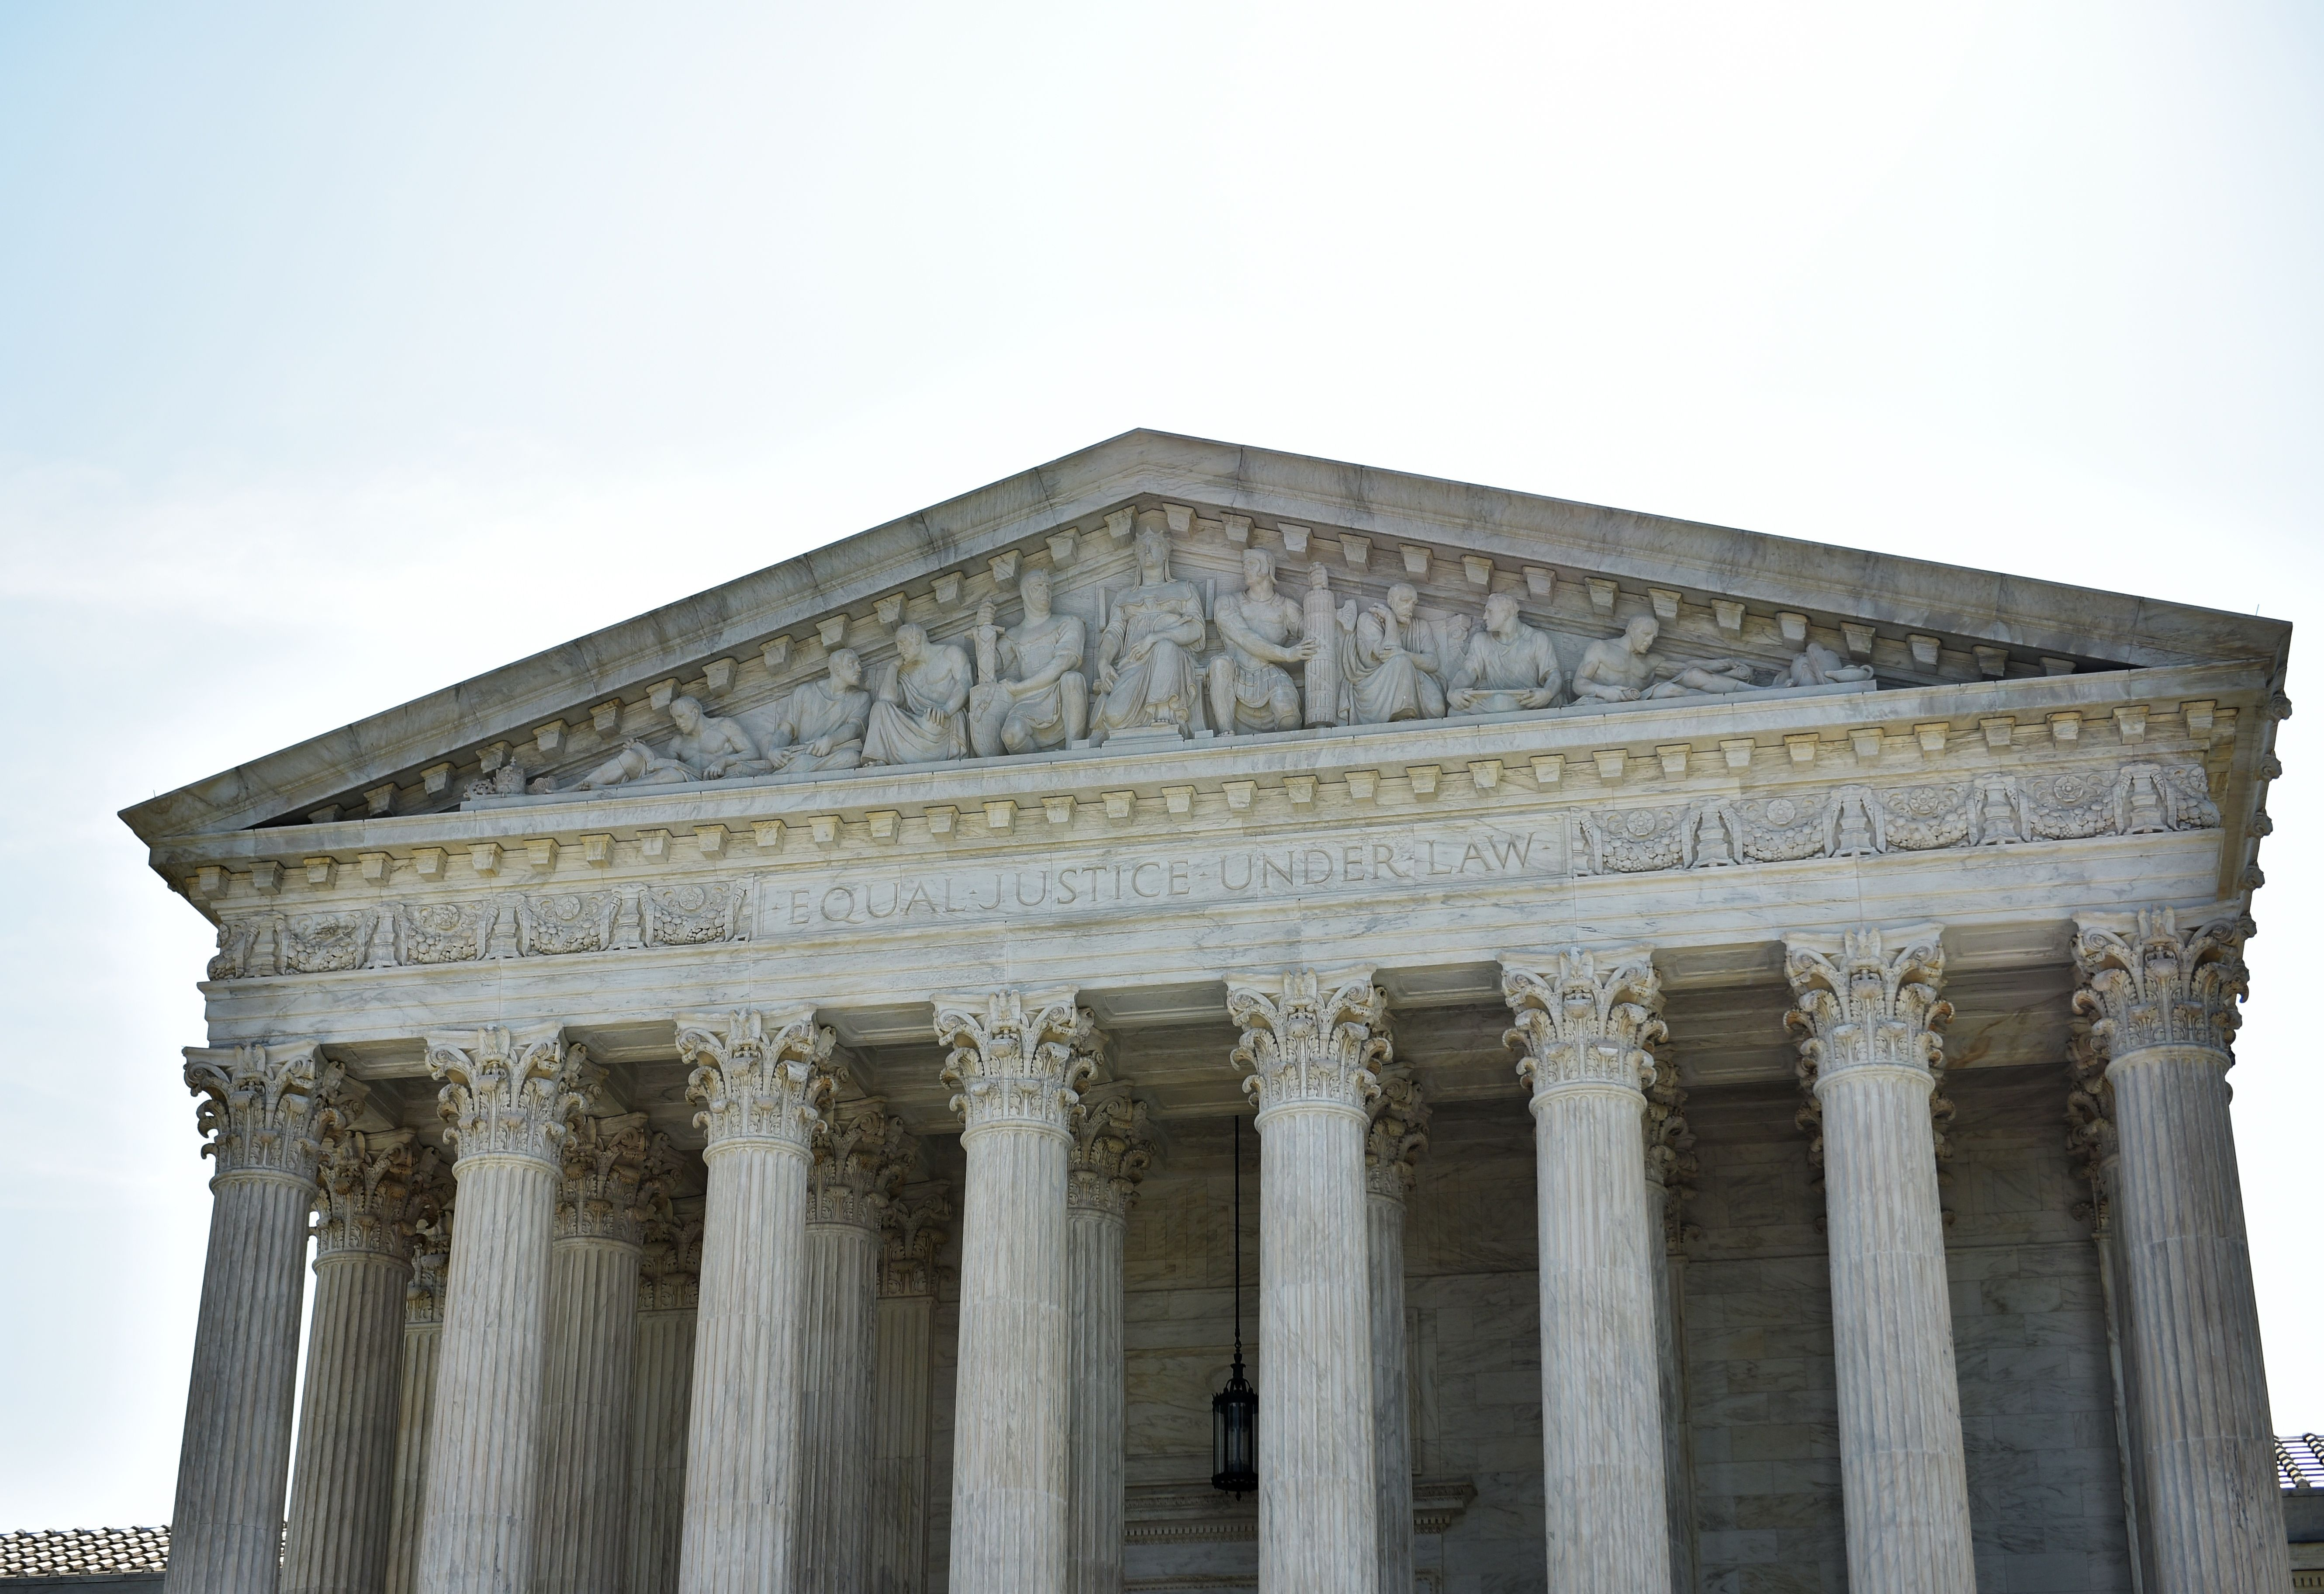 The US Supreme Court in Washington, D.C.